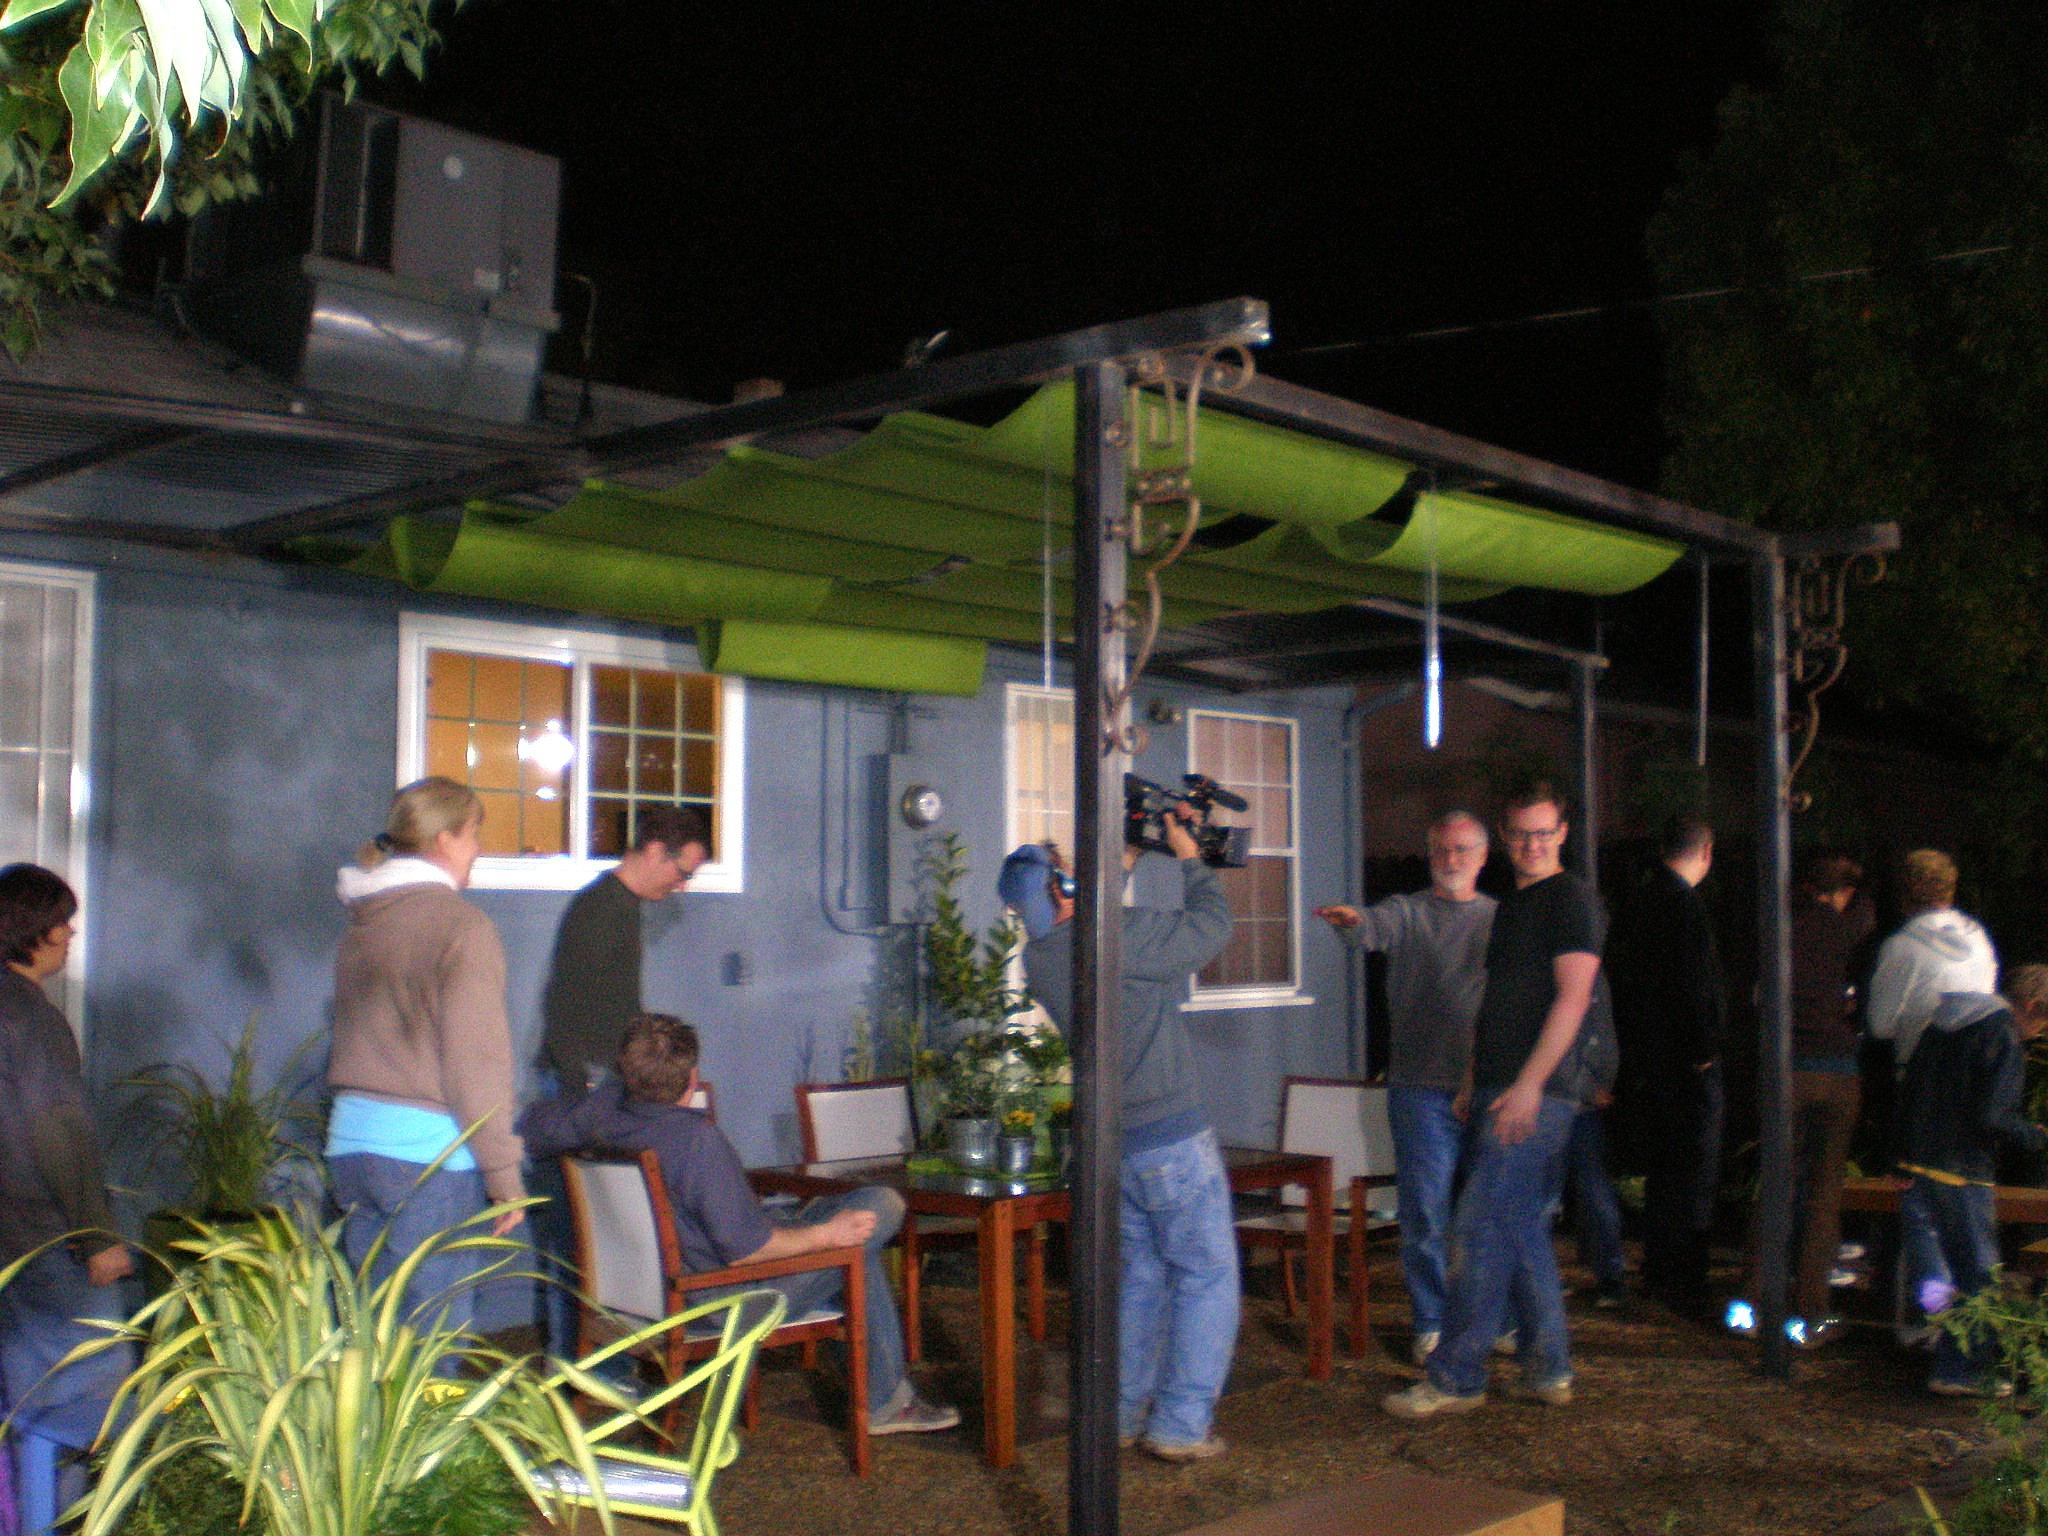 Twisted metal of sacramento filming for diy network show yard crashers episode 304 colorful steel arbor solutioingenieria Images